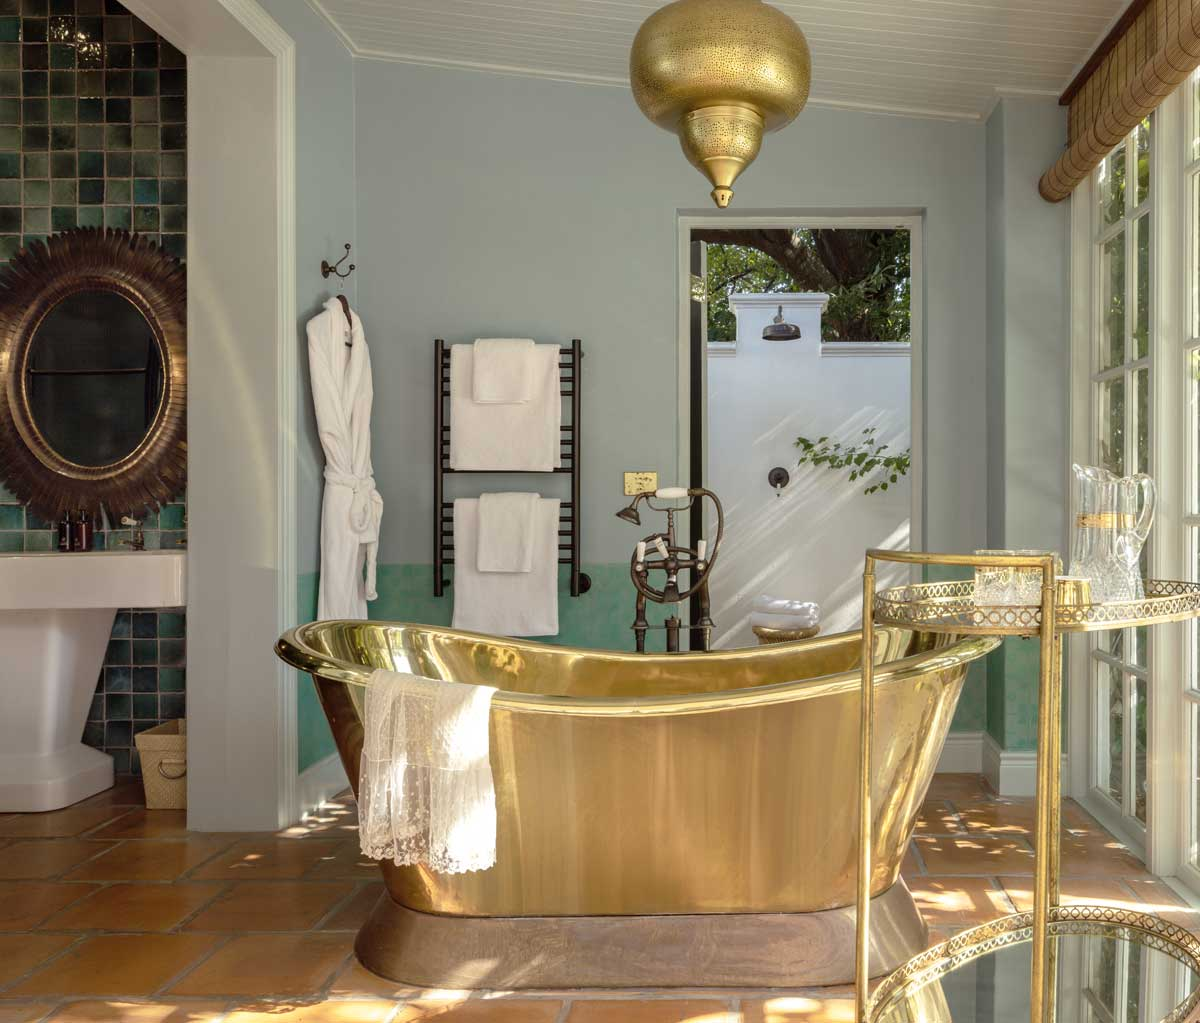 Britannia bath mixer with levers in an aged brass finish at Akademie Street Boutique Hotel by Victorian Bathrooms